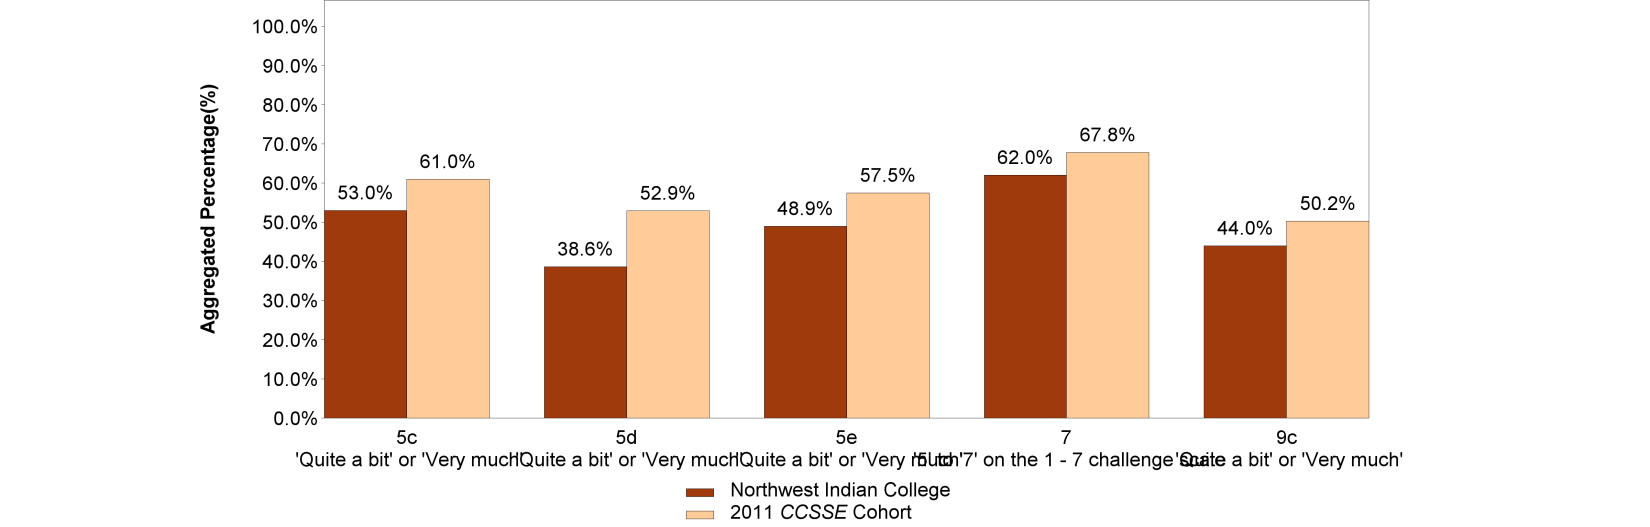 Aspects of Lowest Student Engagement Figure 4 displays the aggregated frequencies for the items on which the college performed least favorably compared with the 2011 CCSSE Cohort. For instance, 53.